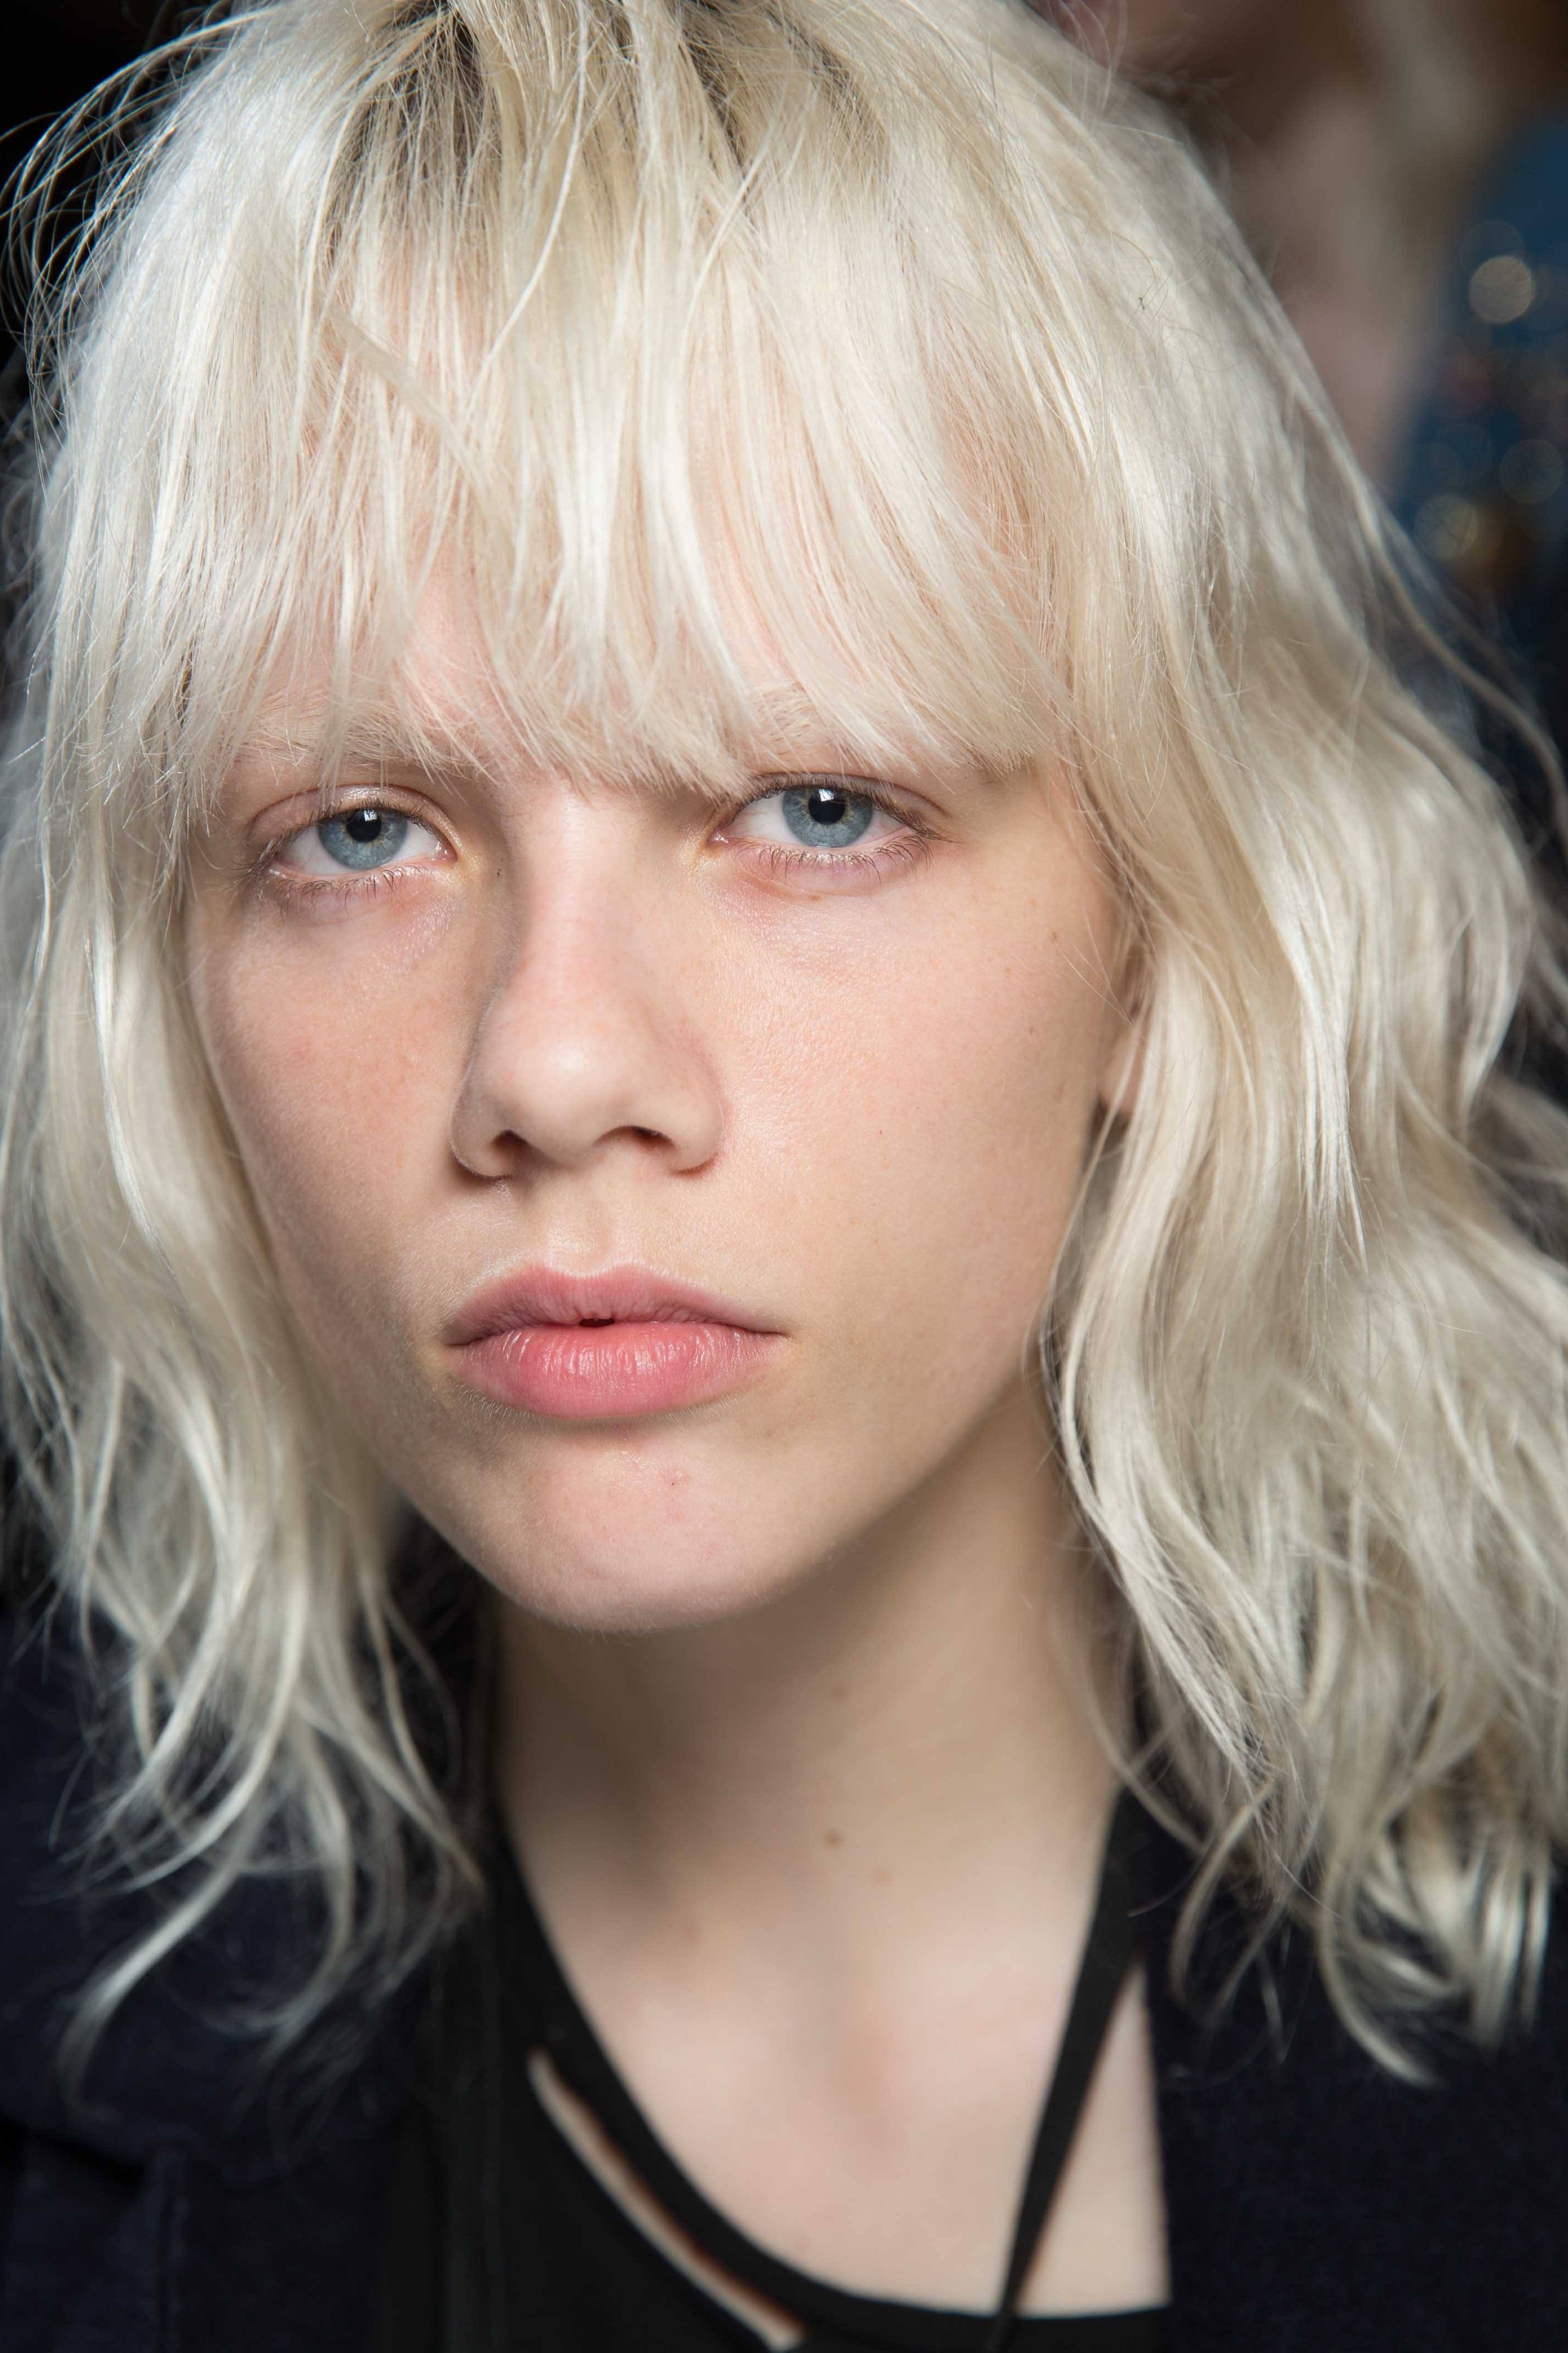 Blonde Bob Hairstyles: 5 Hair Trends To Try Out In 2017 Within Most Popular Wavy Blonde Bob Hairstyles (View 6 of 20)